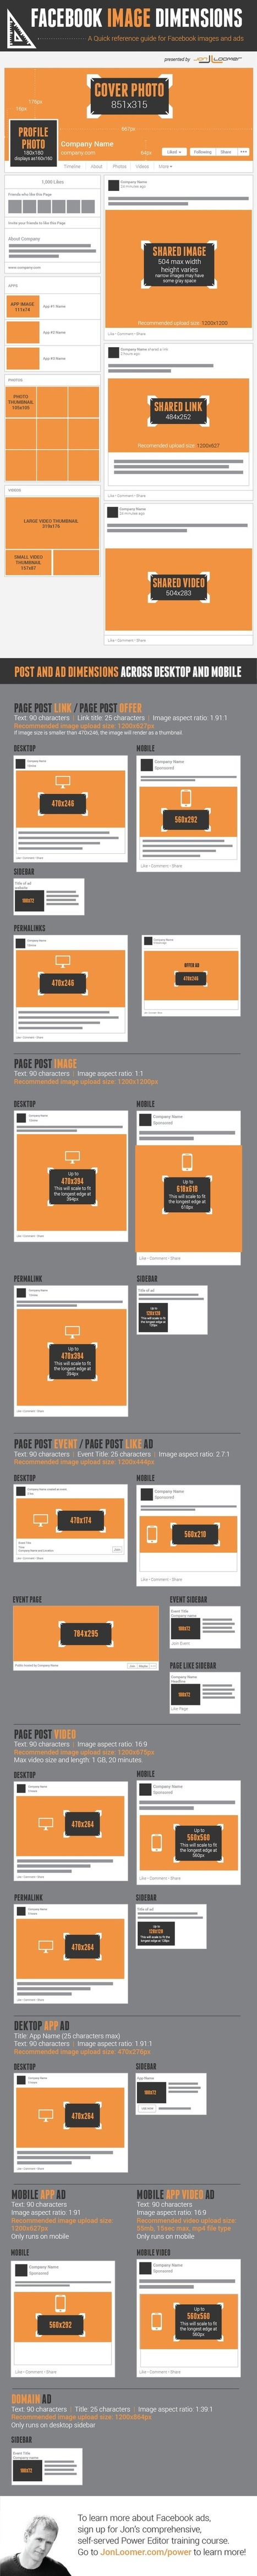 All Facebook Image Dimensions: Timeline, Posts, Ads [Infographic] | Community Management - veille | Scoop.it